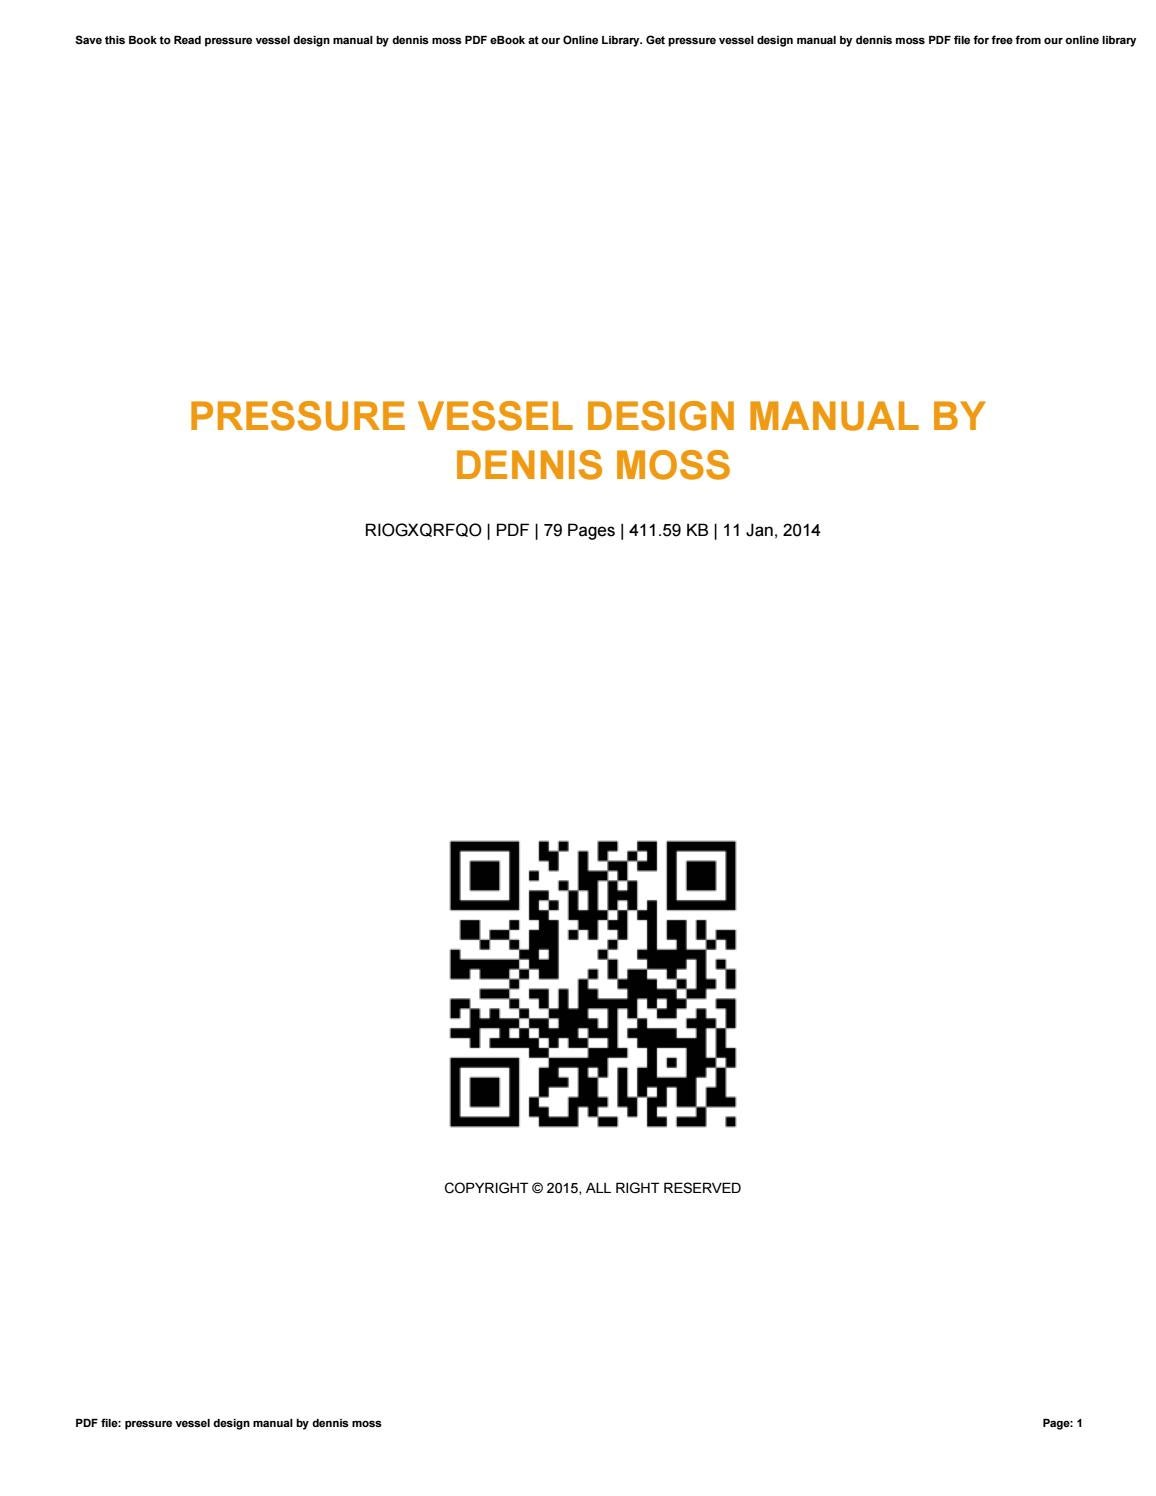 Pressure vessel design manual by dennis moss by